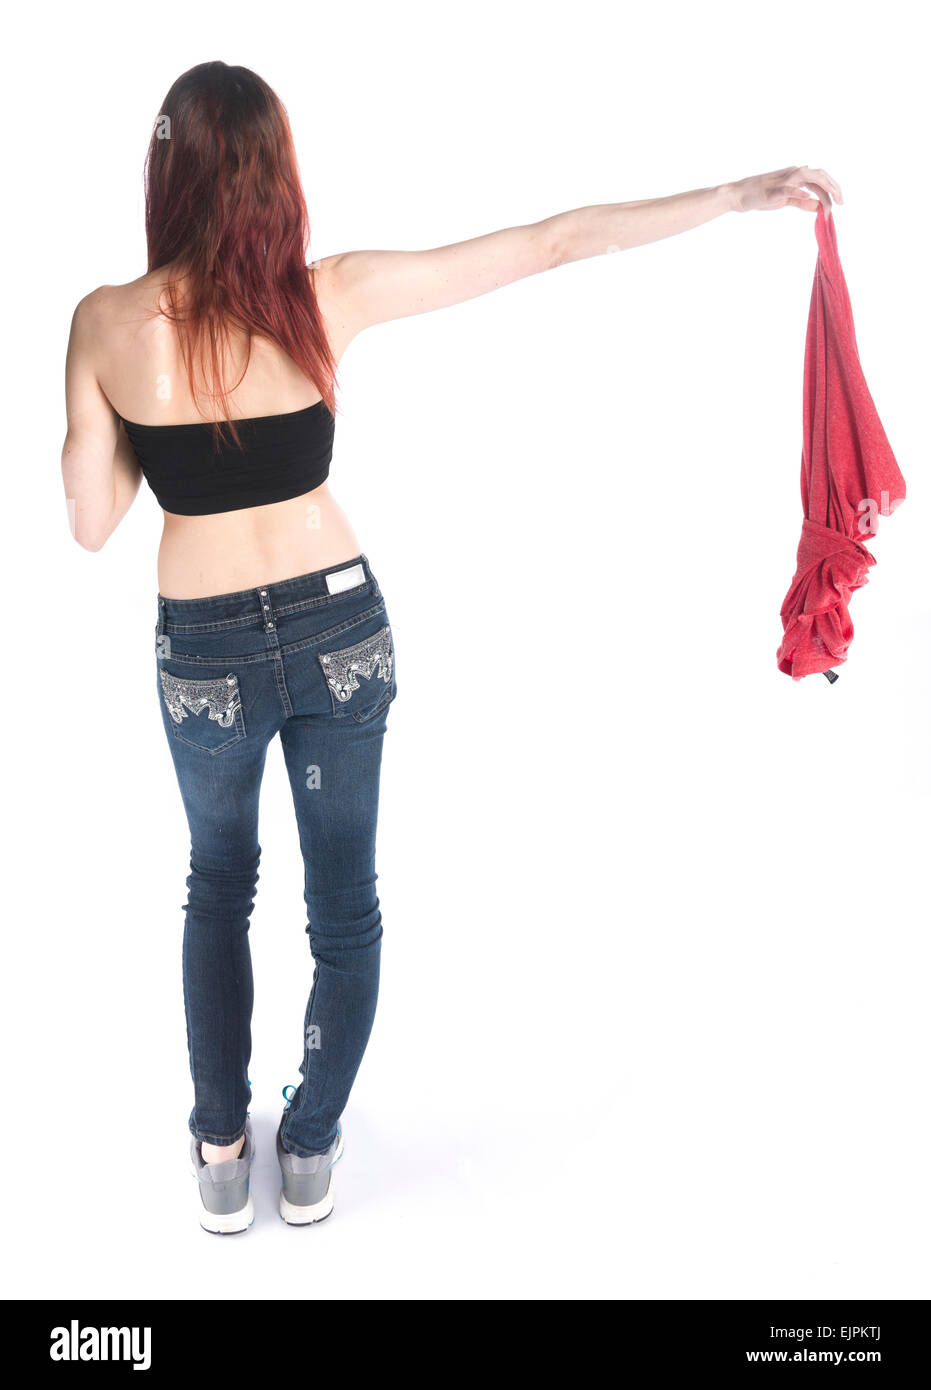 Rear View of a Woman Holding her Shirt on the Side - Stock Image